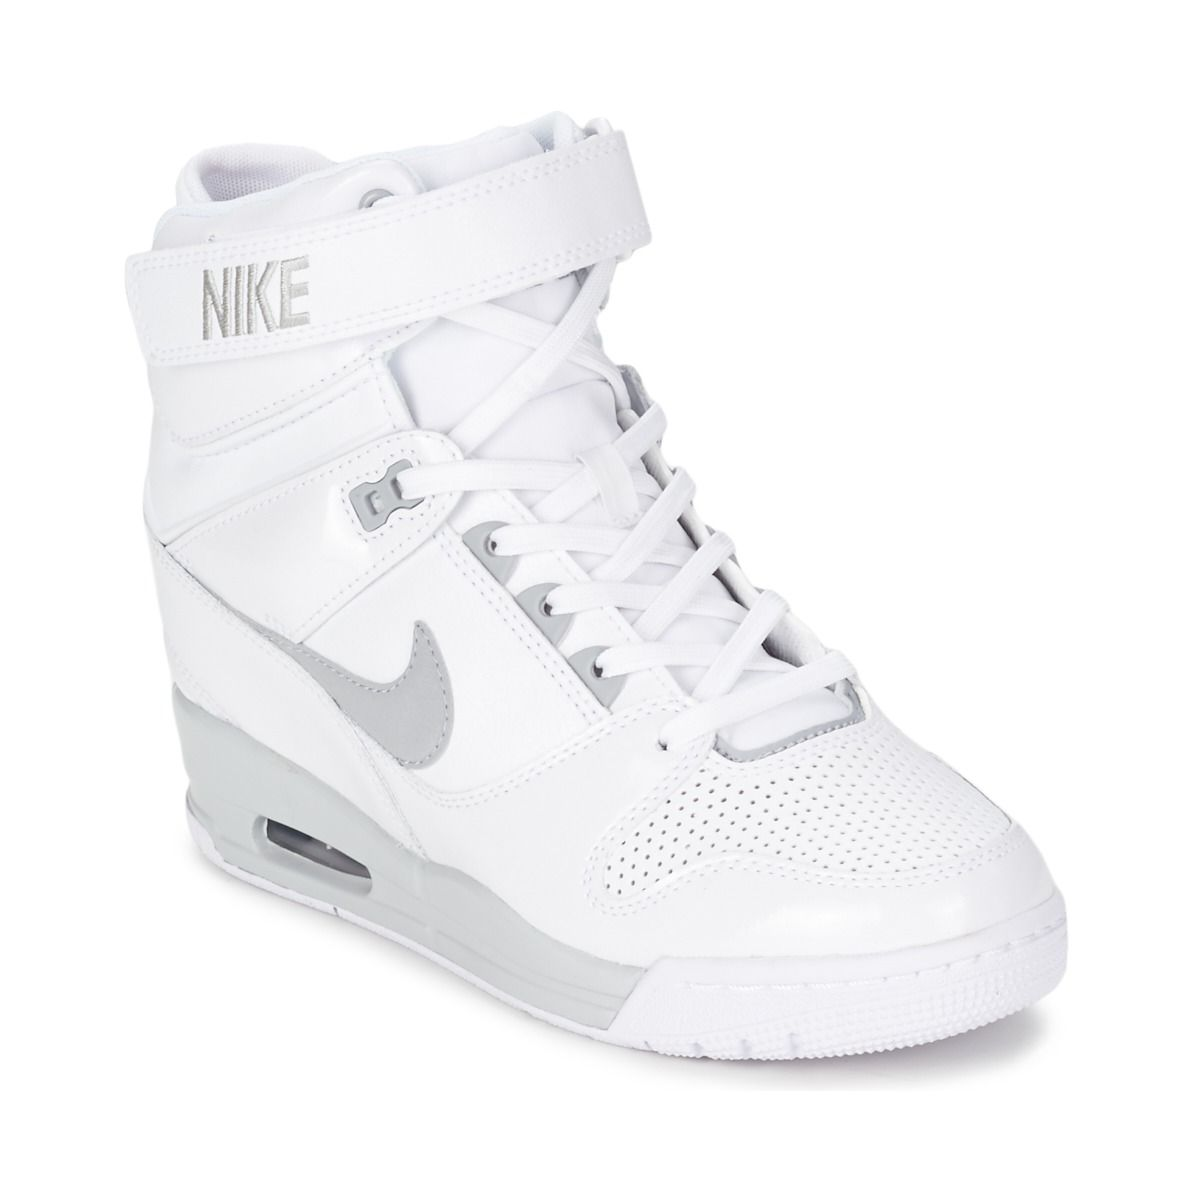 wholesale buy online fashion style Baskets montantes Nike AIR REVOLUTION SKY HI Blanc | Nike ...